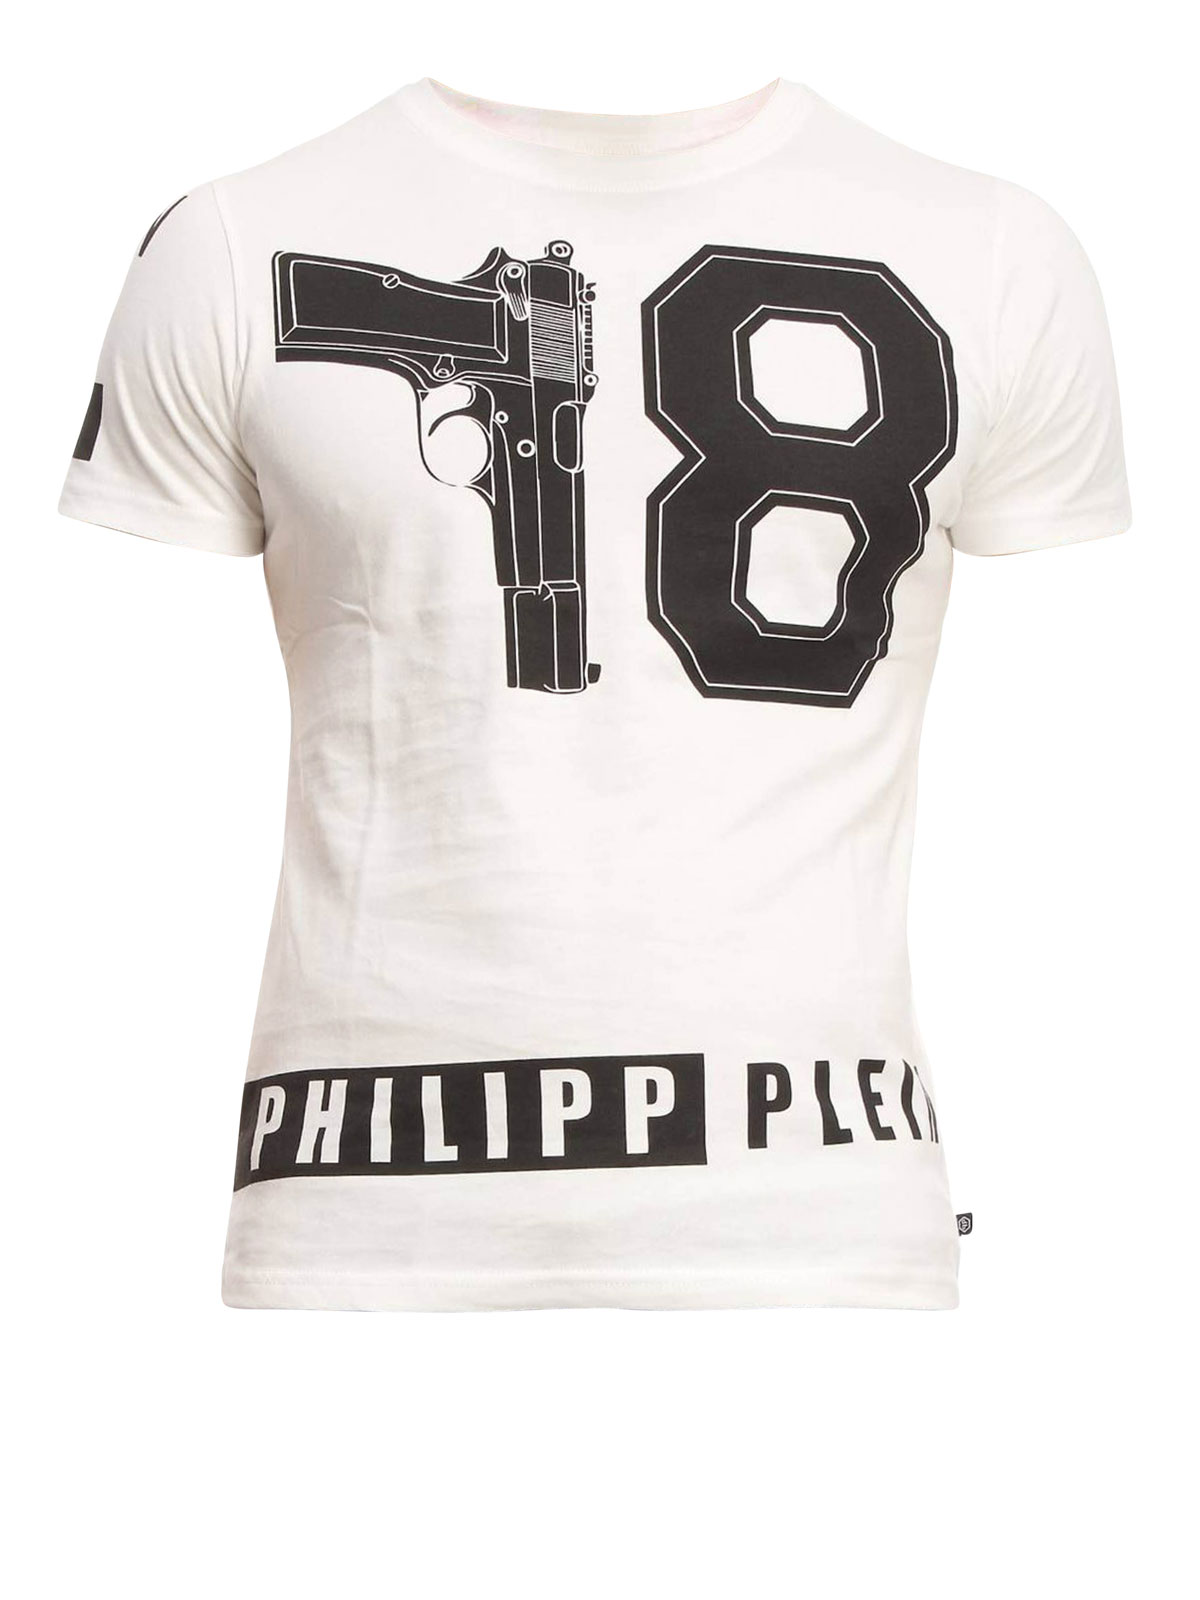 philipp plein philipp t shirt t shirts hm342542 01. Black Bedroom Furniture Sets. Home Design Ideas